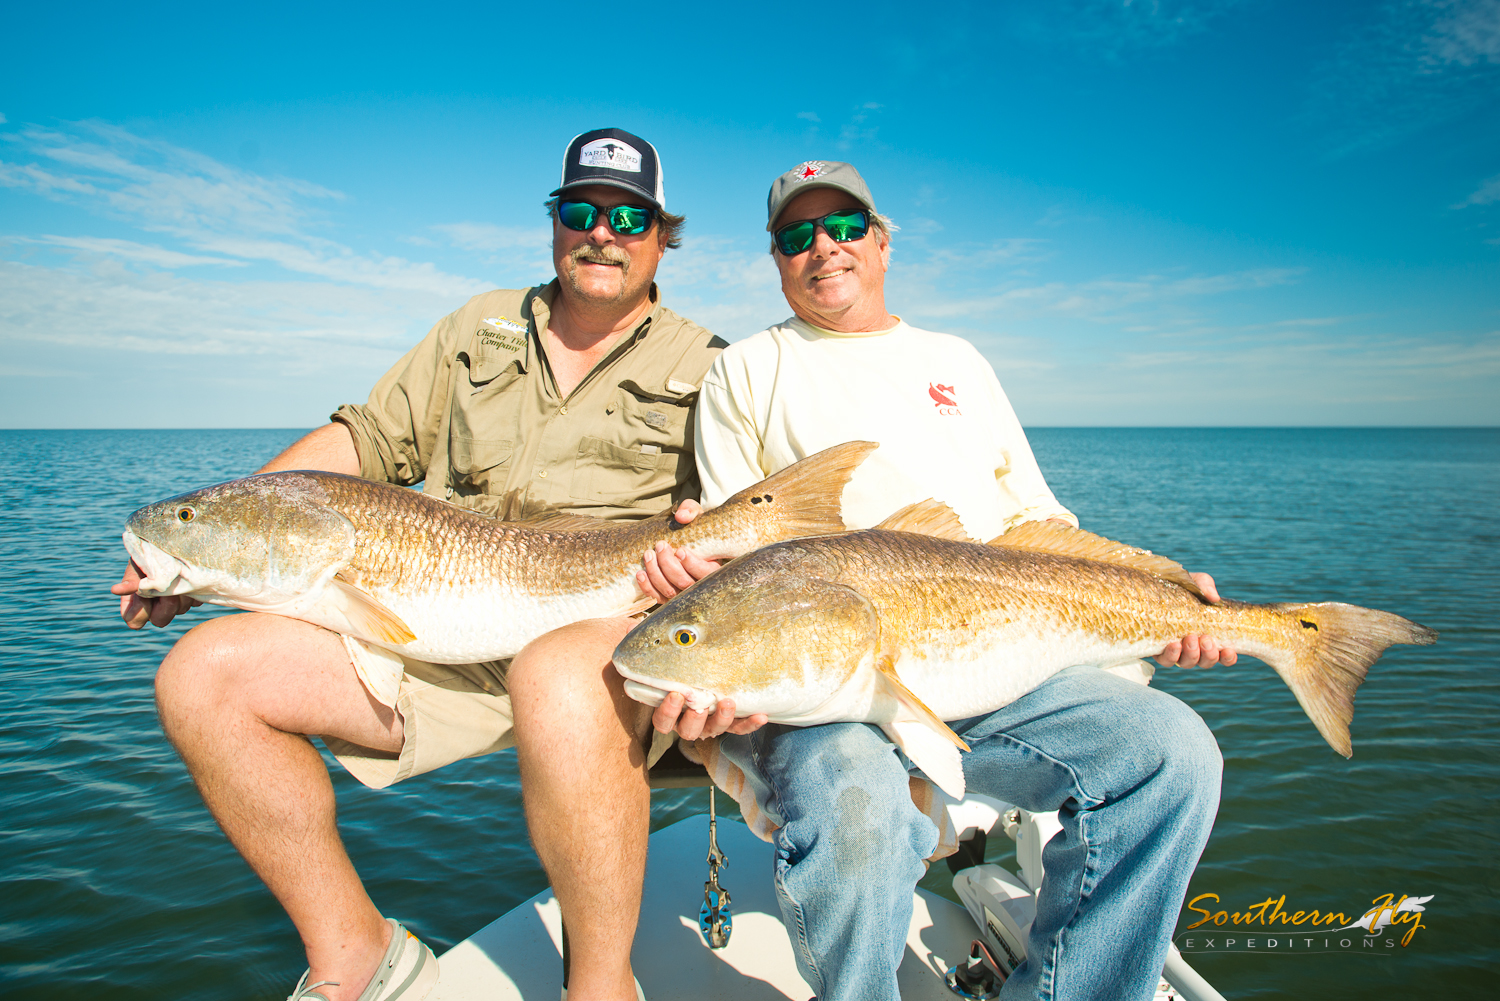 Top Louisiana Fly Fishing Guide Southern Fly Expeditions